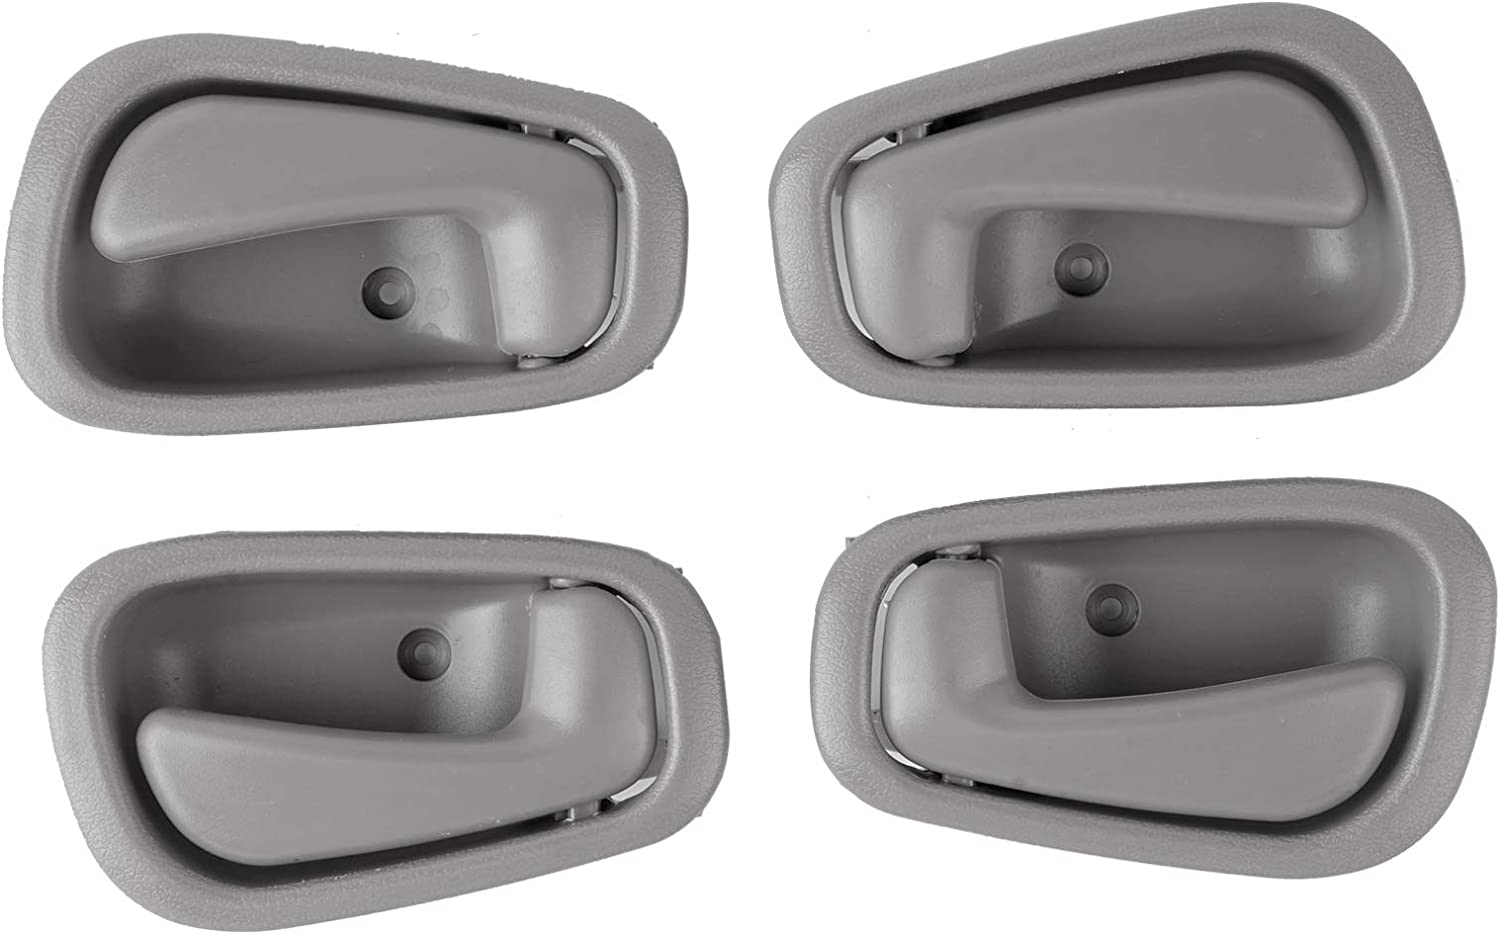 NPAUTO List price Interior Front Rear Door Shipping included Passenger Handles Side Pa Driver